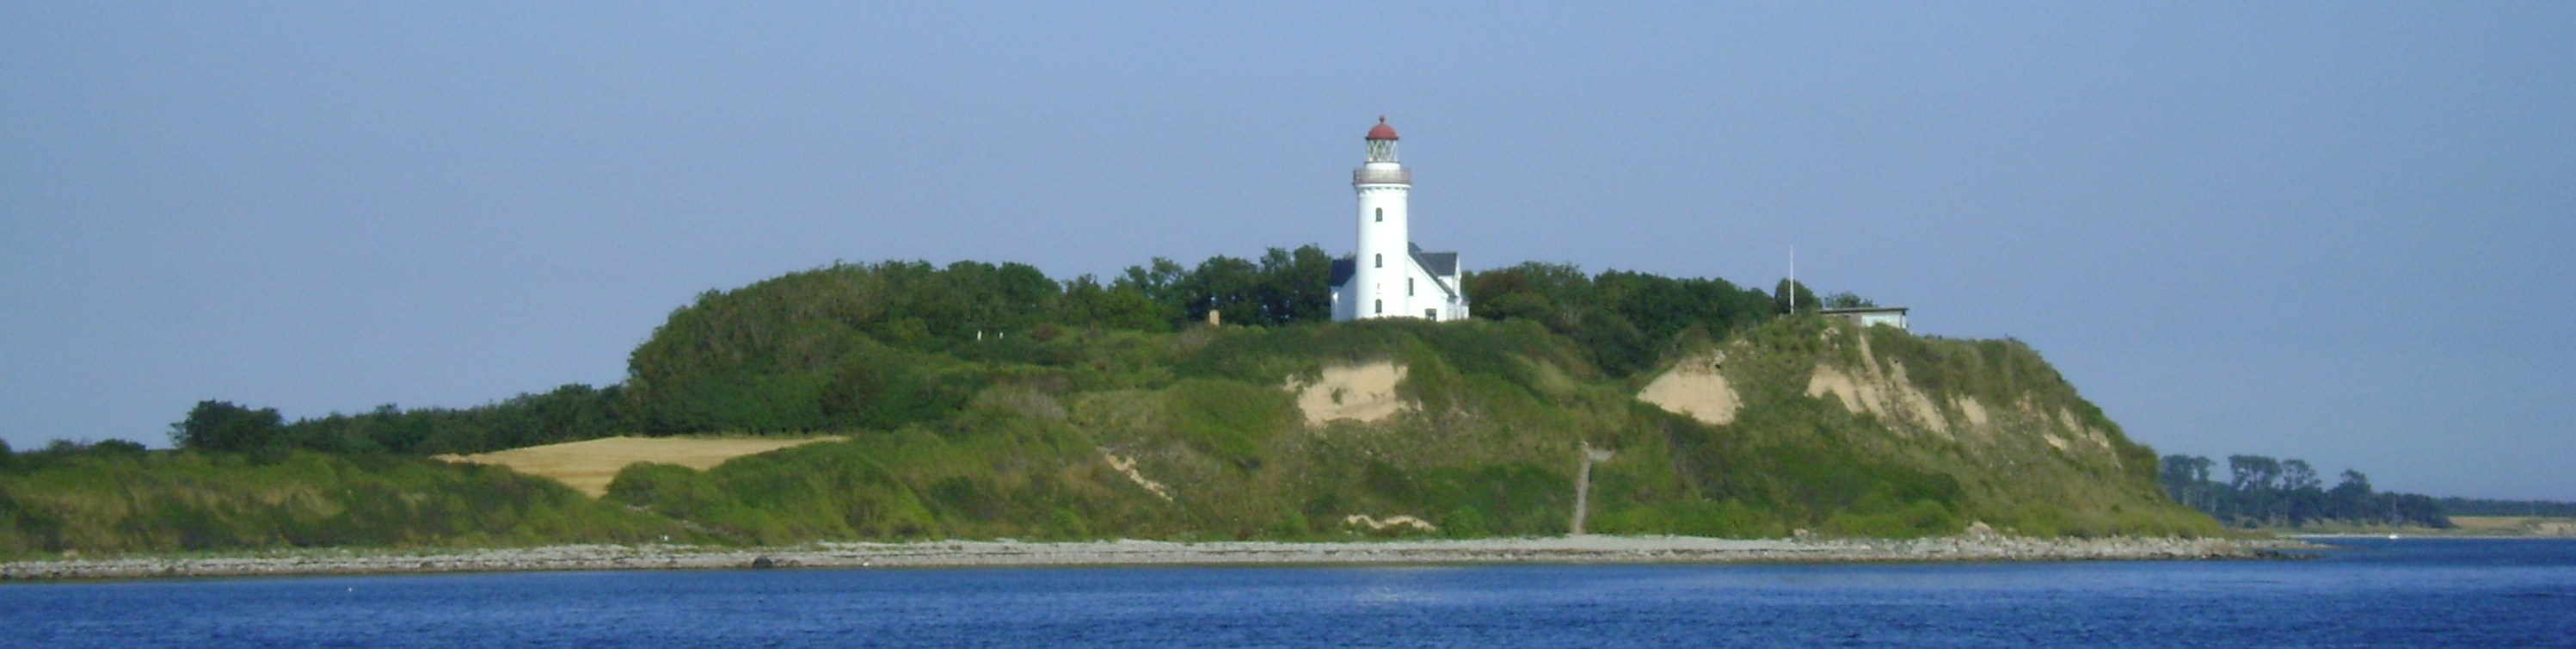 Samso lighthouse